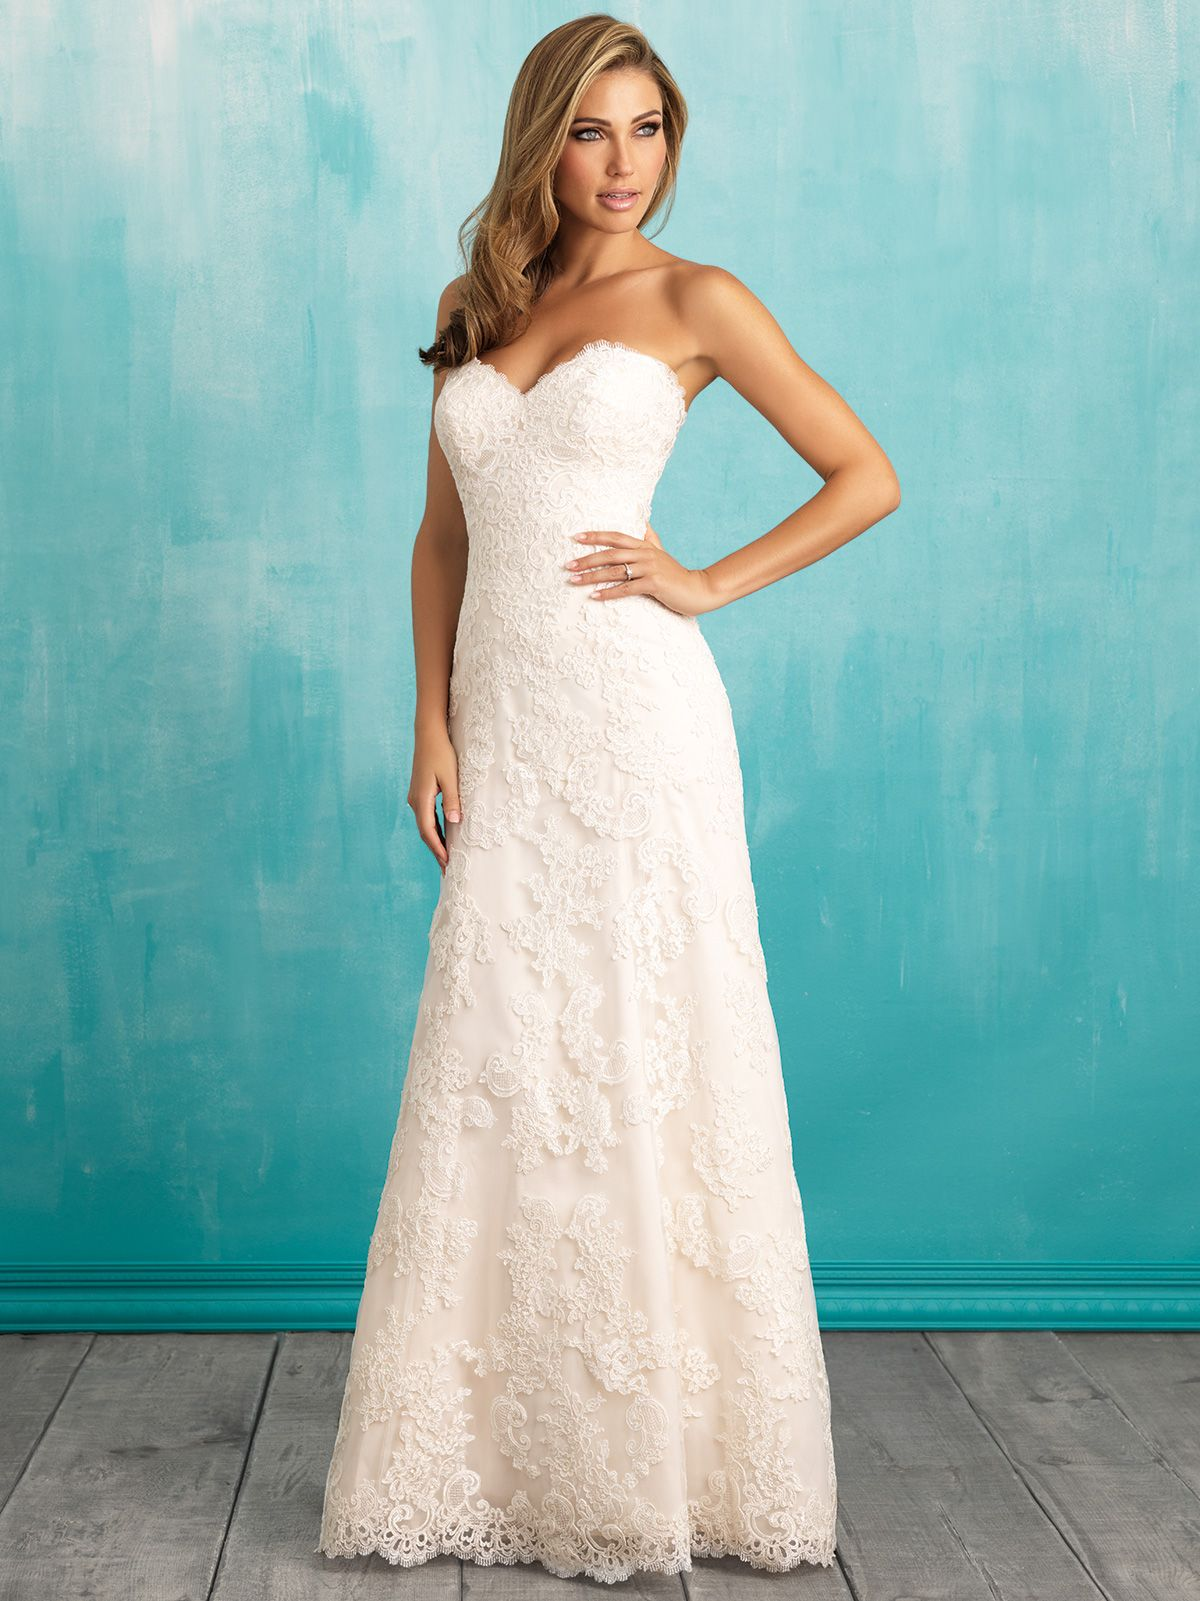 Colorful Utah Wedding Dress Rental Collection - All Wedding Dresses ...